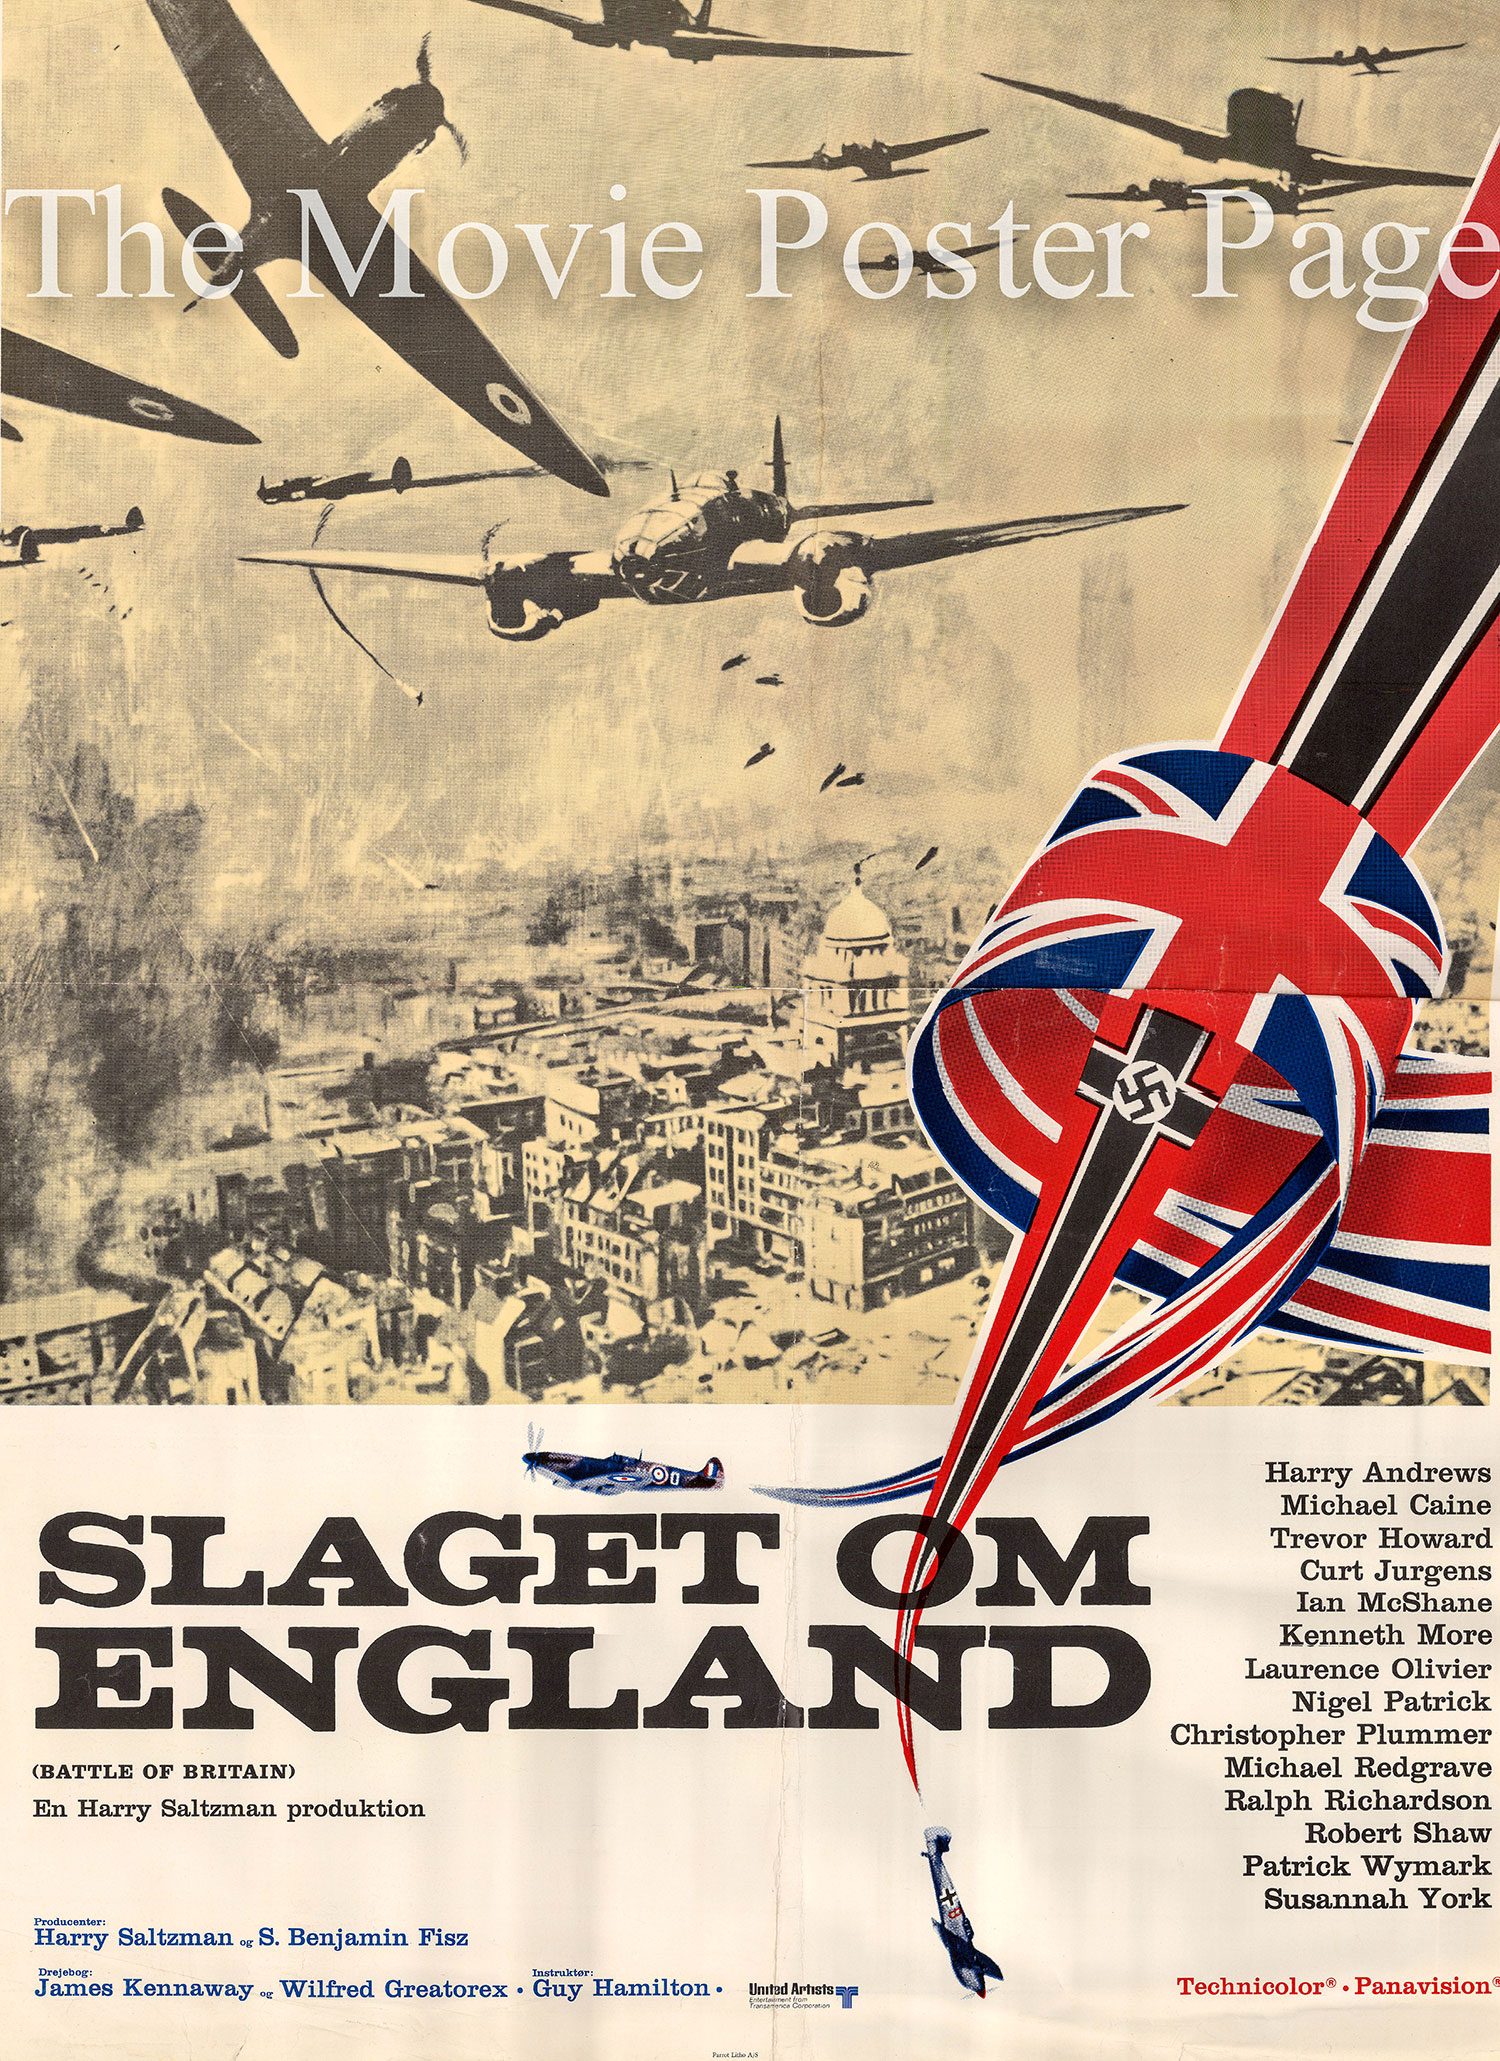 Pictured is a Danish promotional poster for the 1969 Guy Hamilton film Battle of Britain starring Michael Caine.